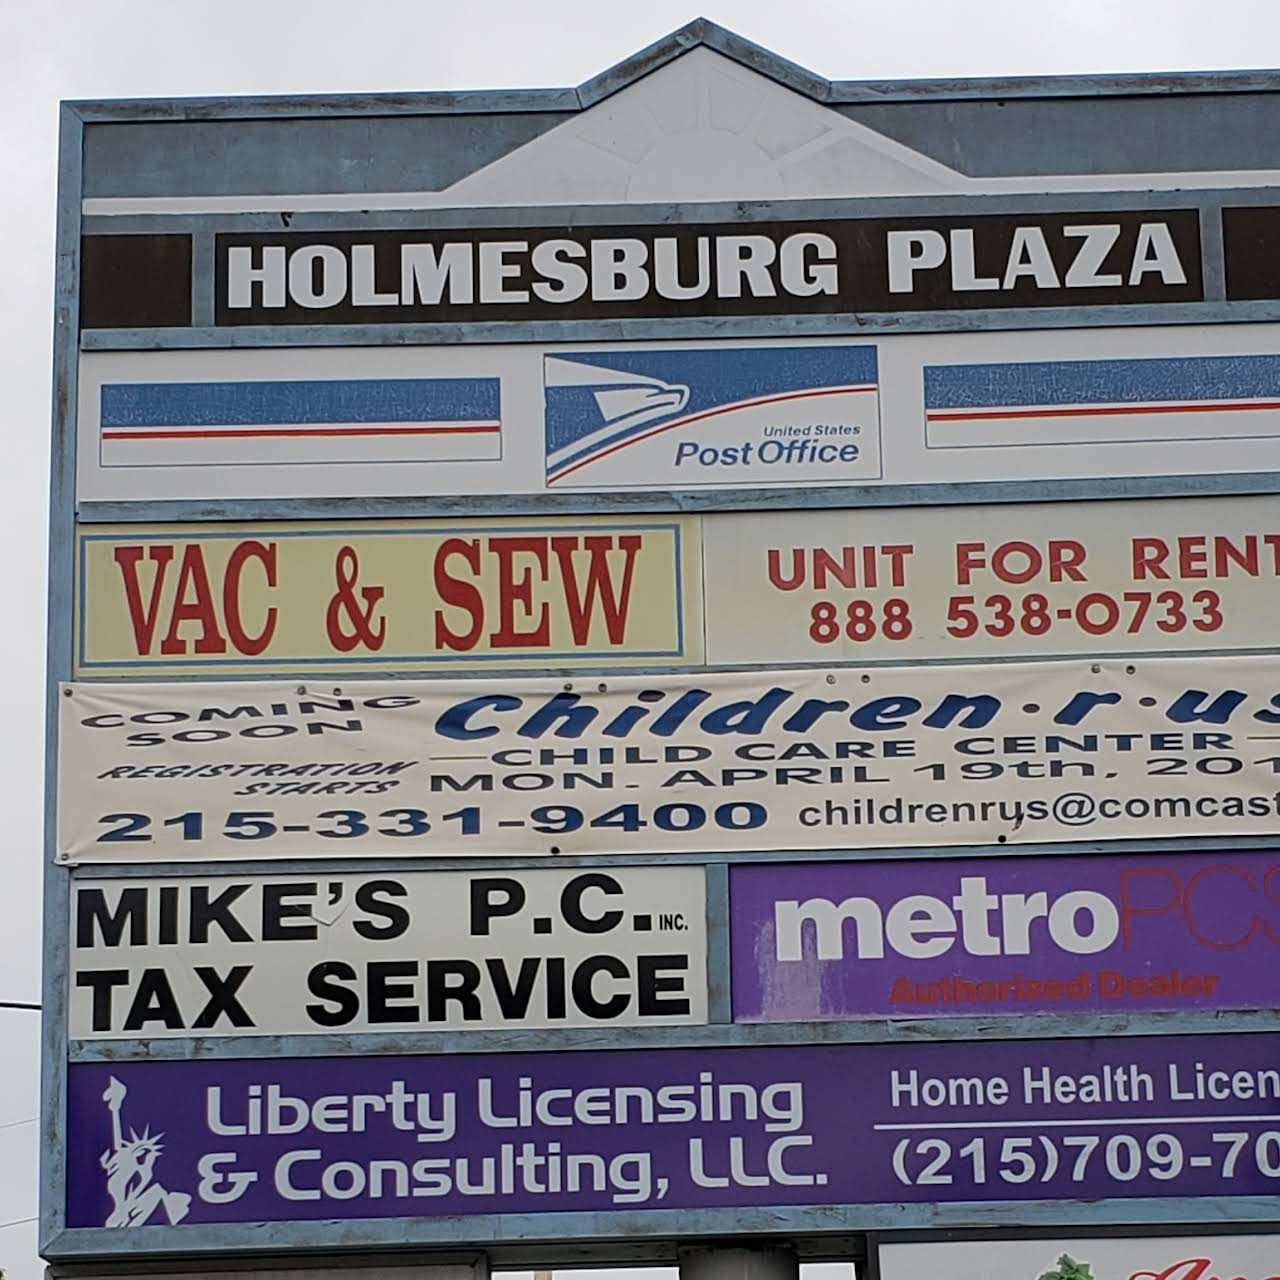 Liberty Licensing Consulting Llc Home And Home Care Licenses